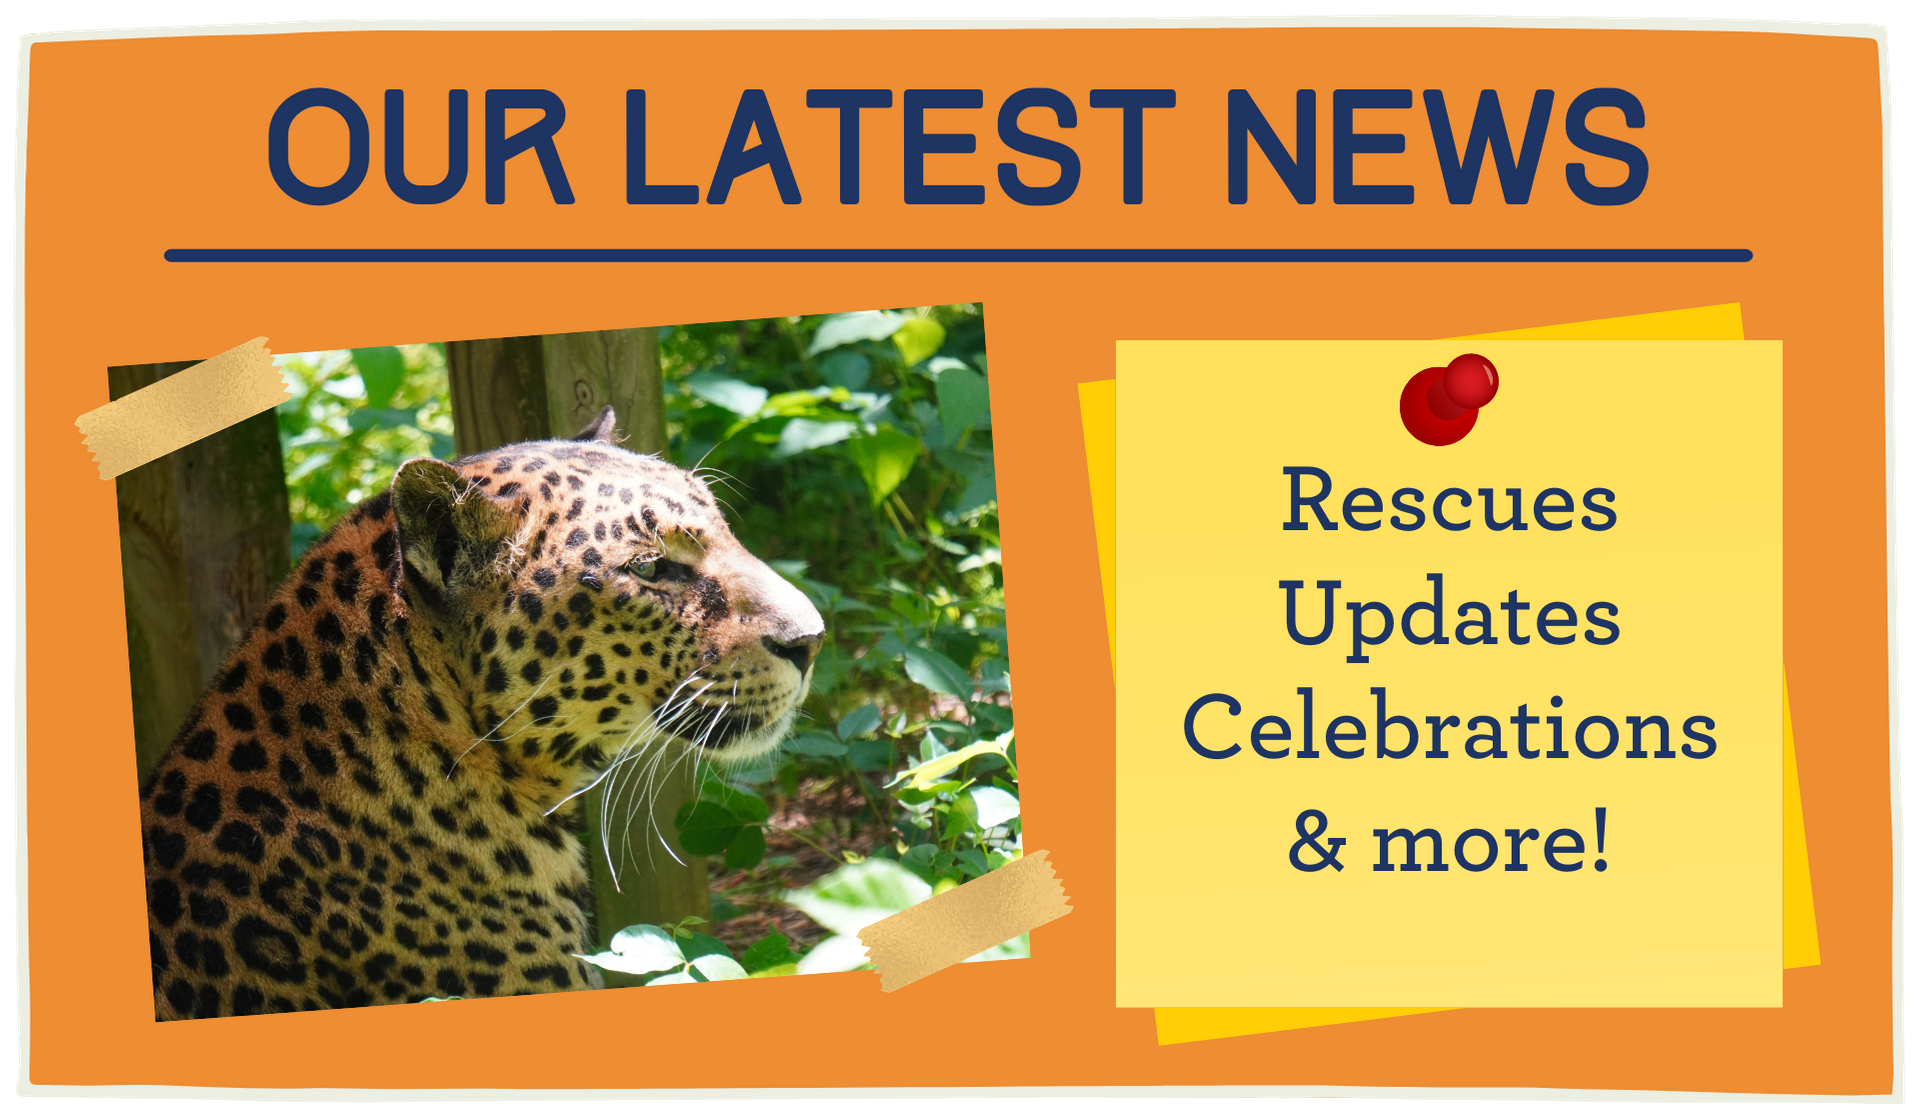 Find articles about Carolina Tiger Rescue and our animals